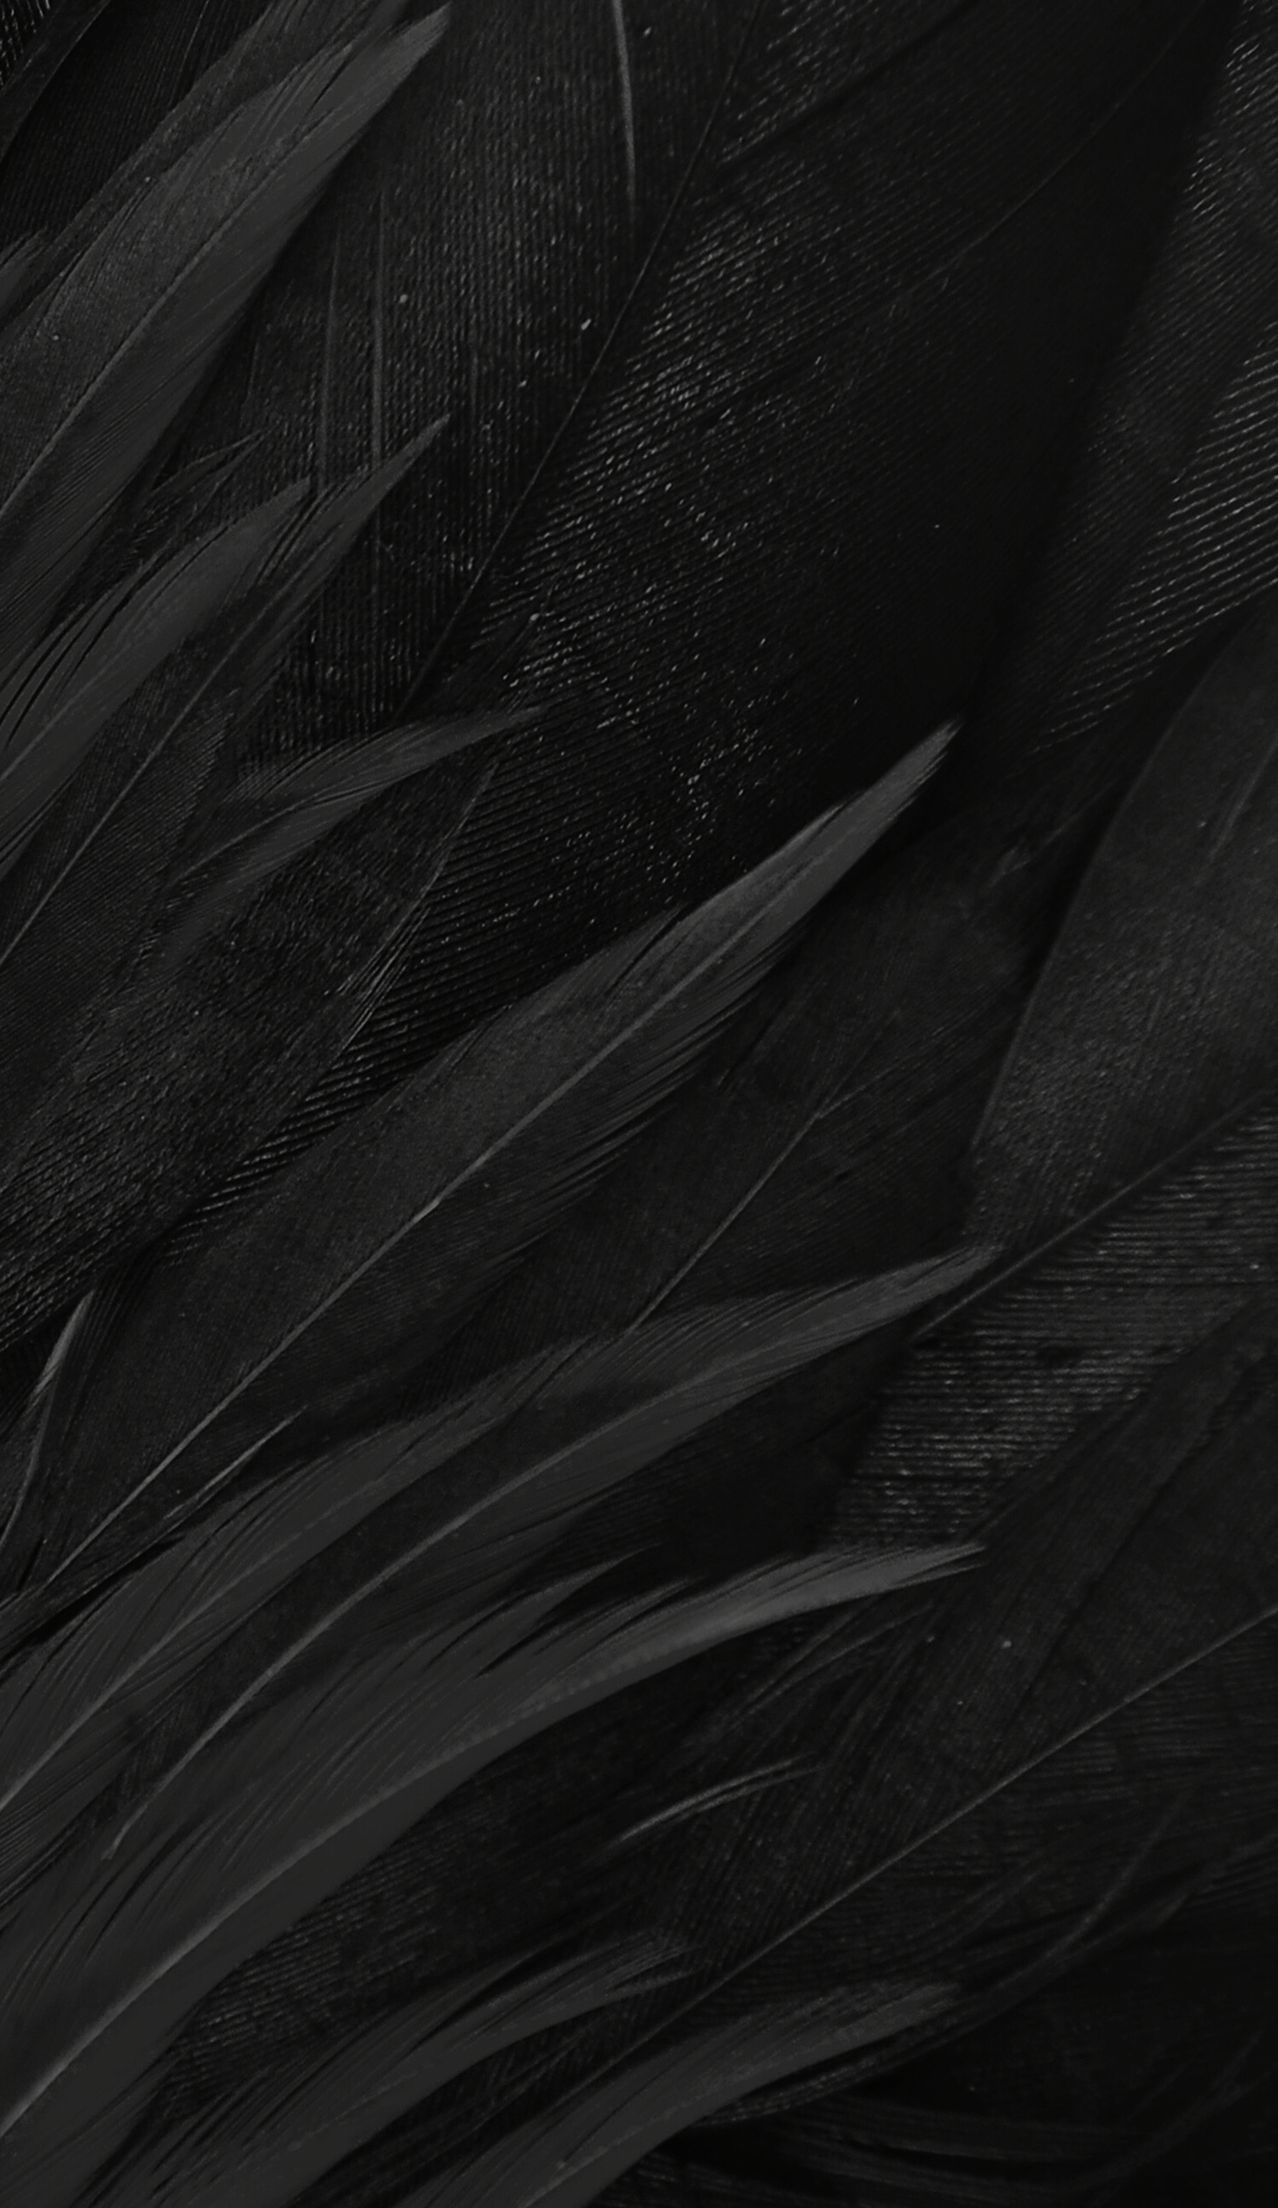 black feathers blackfeathers in 2019 black feathers